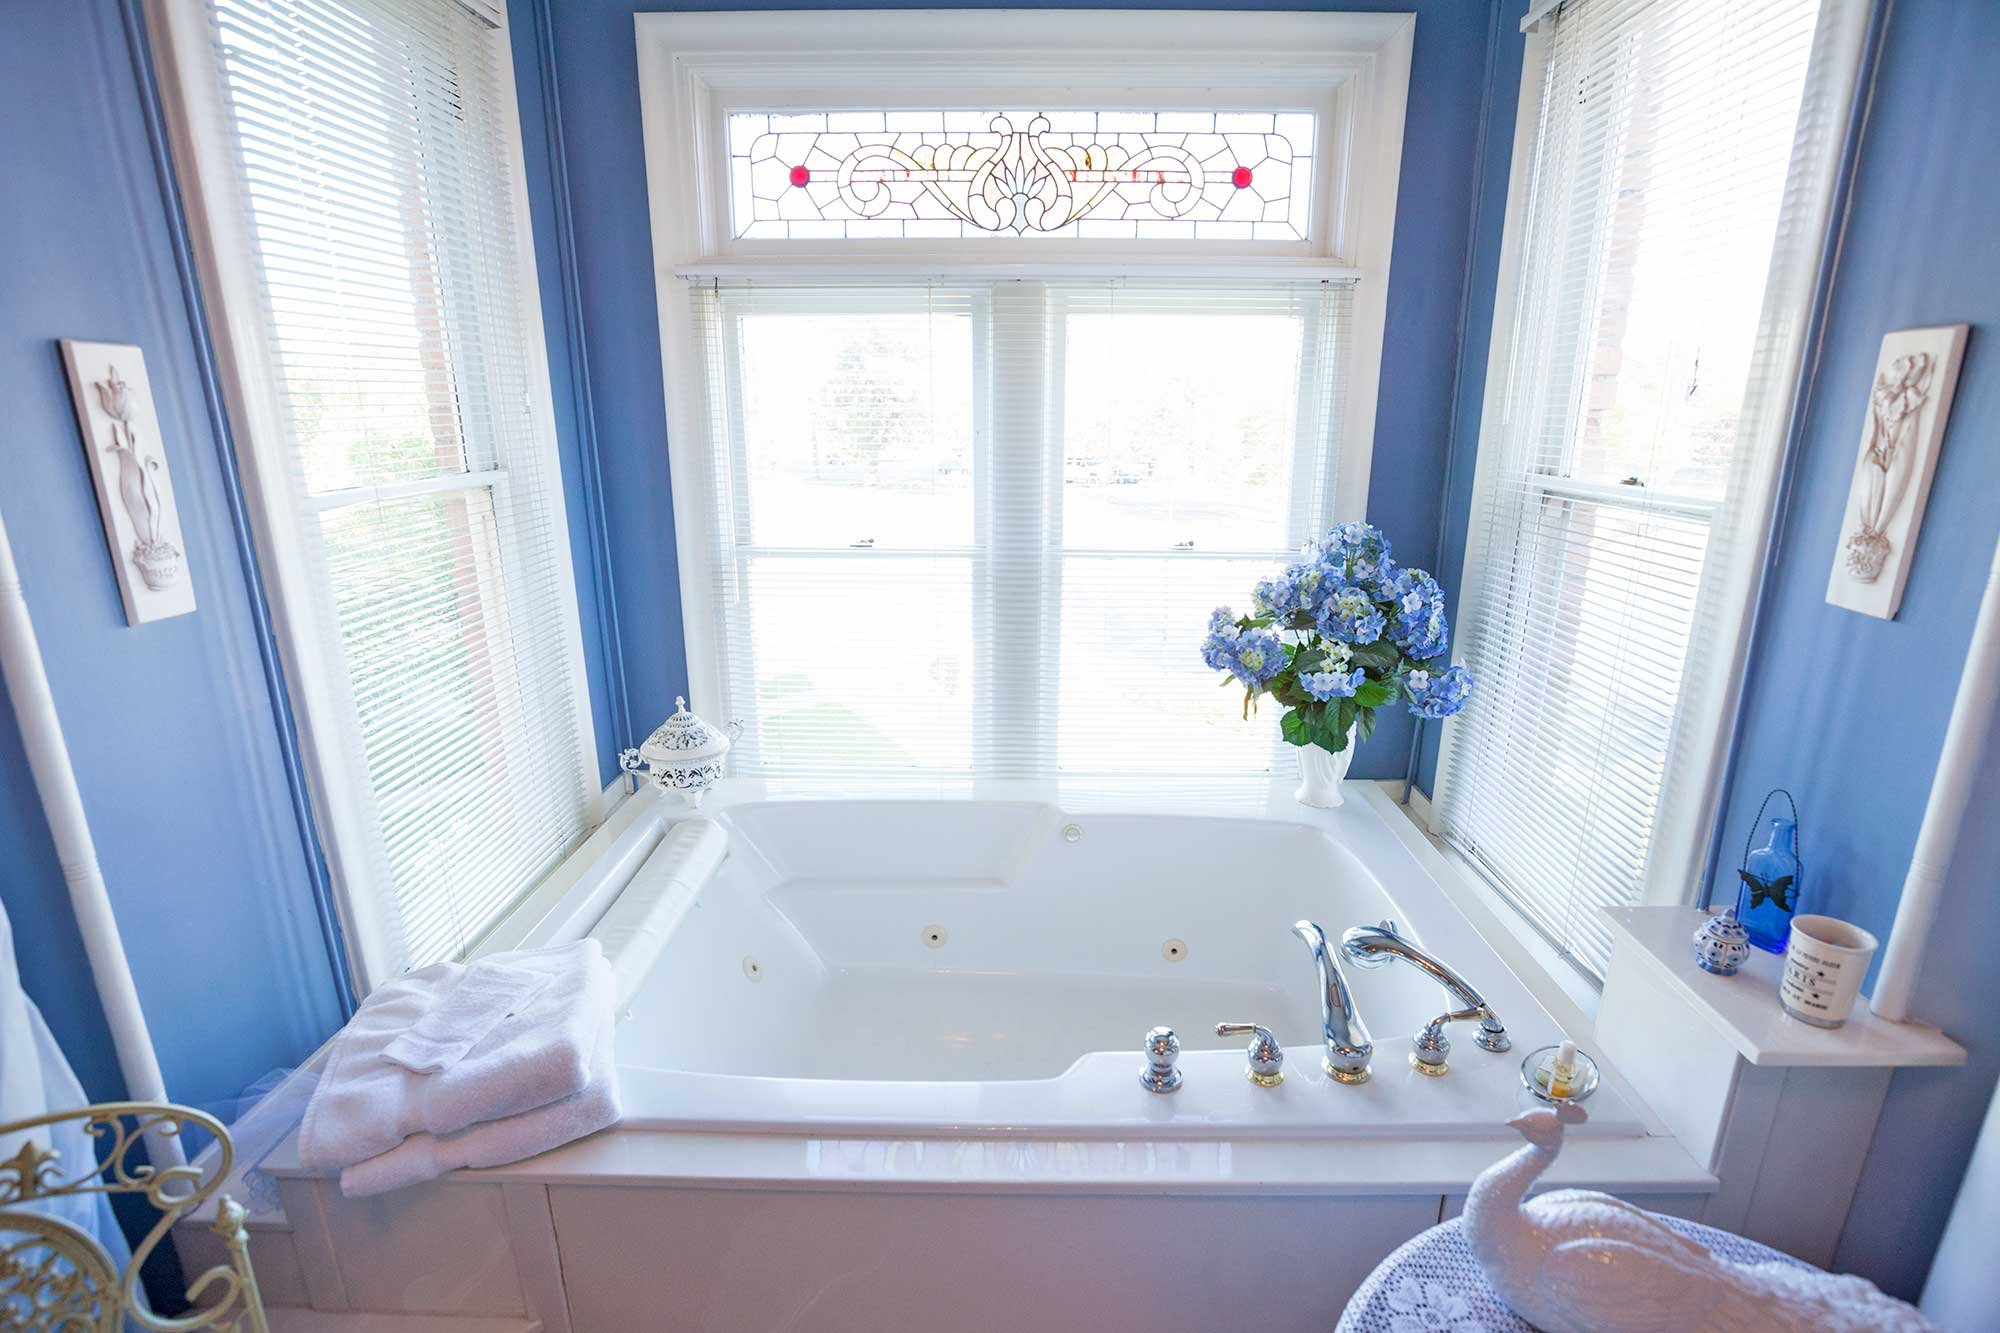 Luxurious Bathtub Near Window